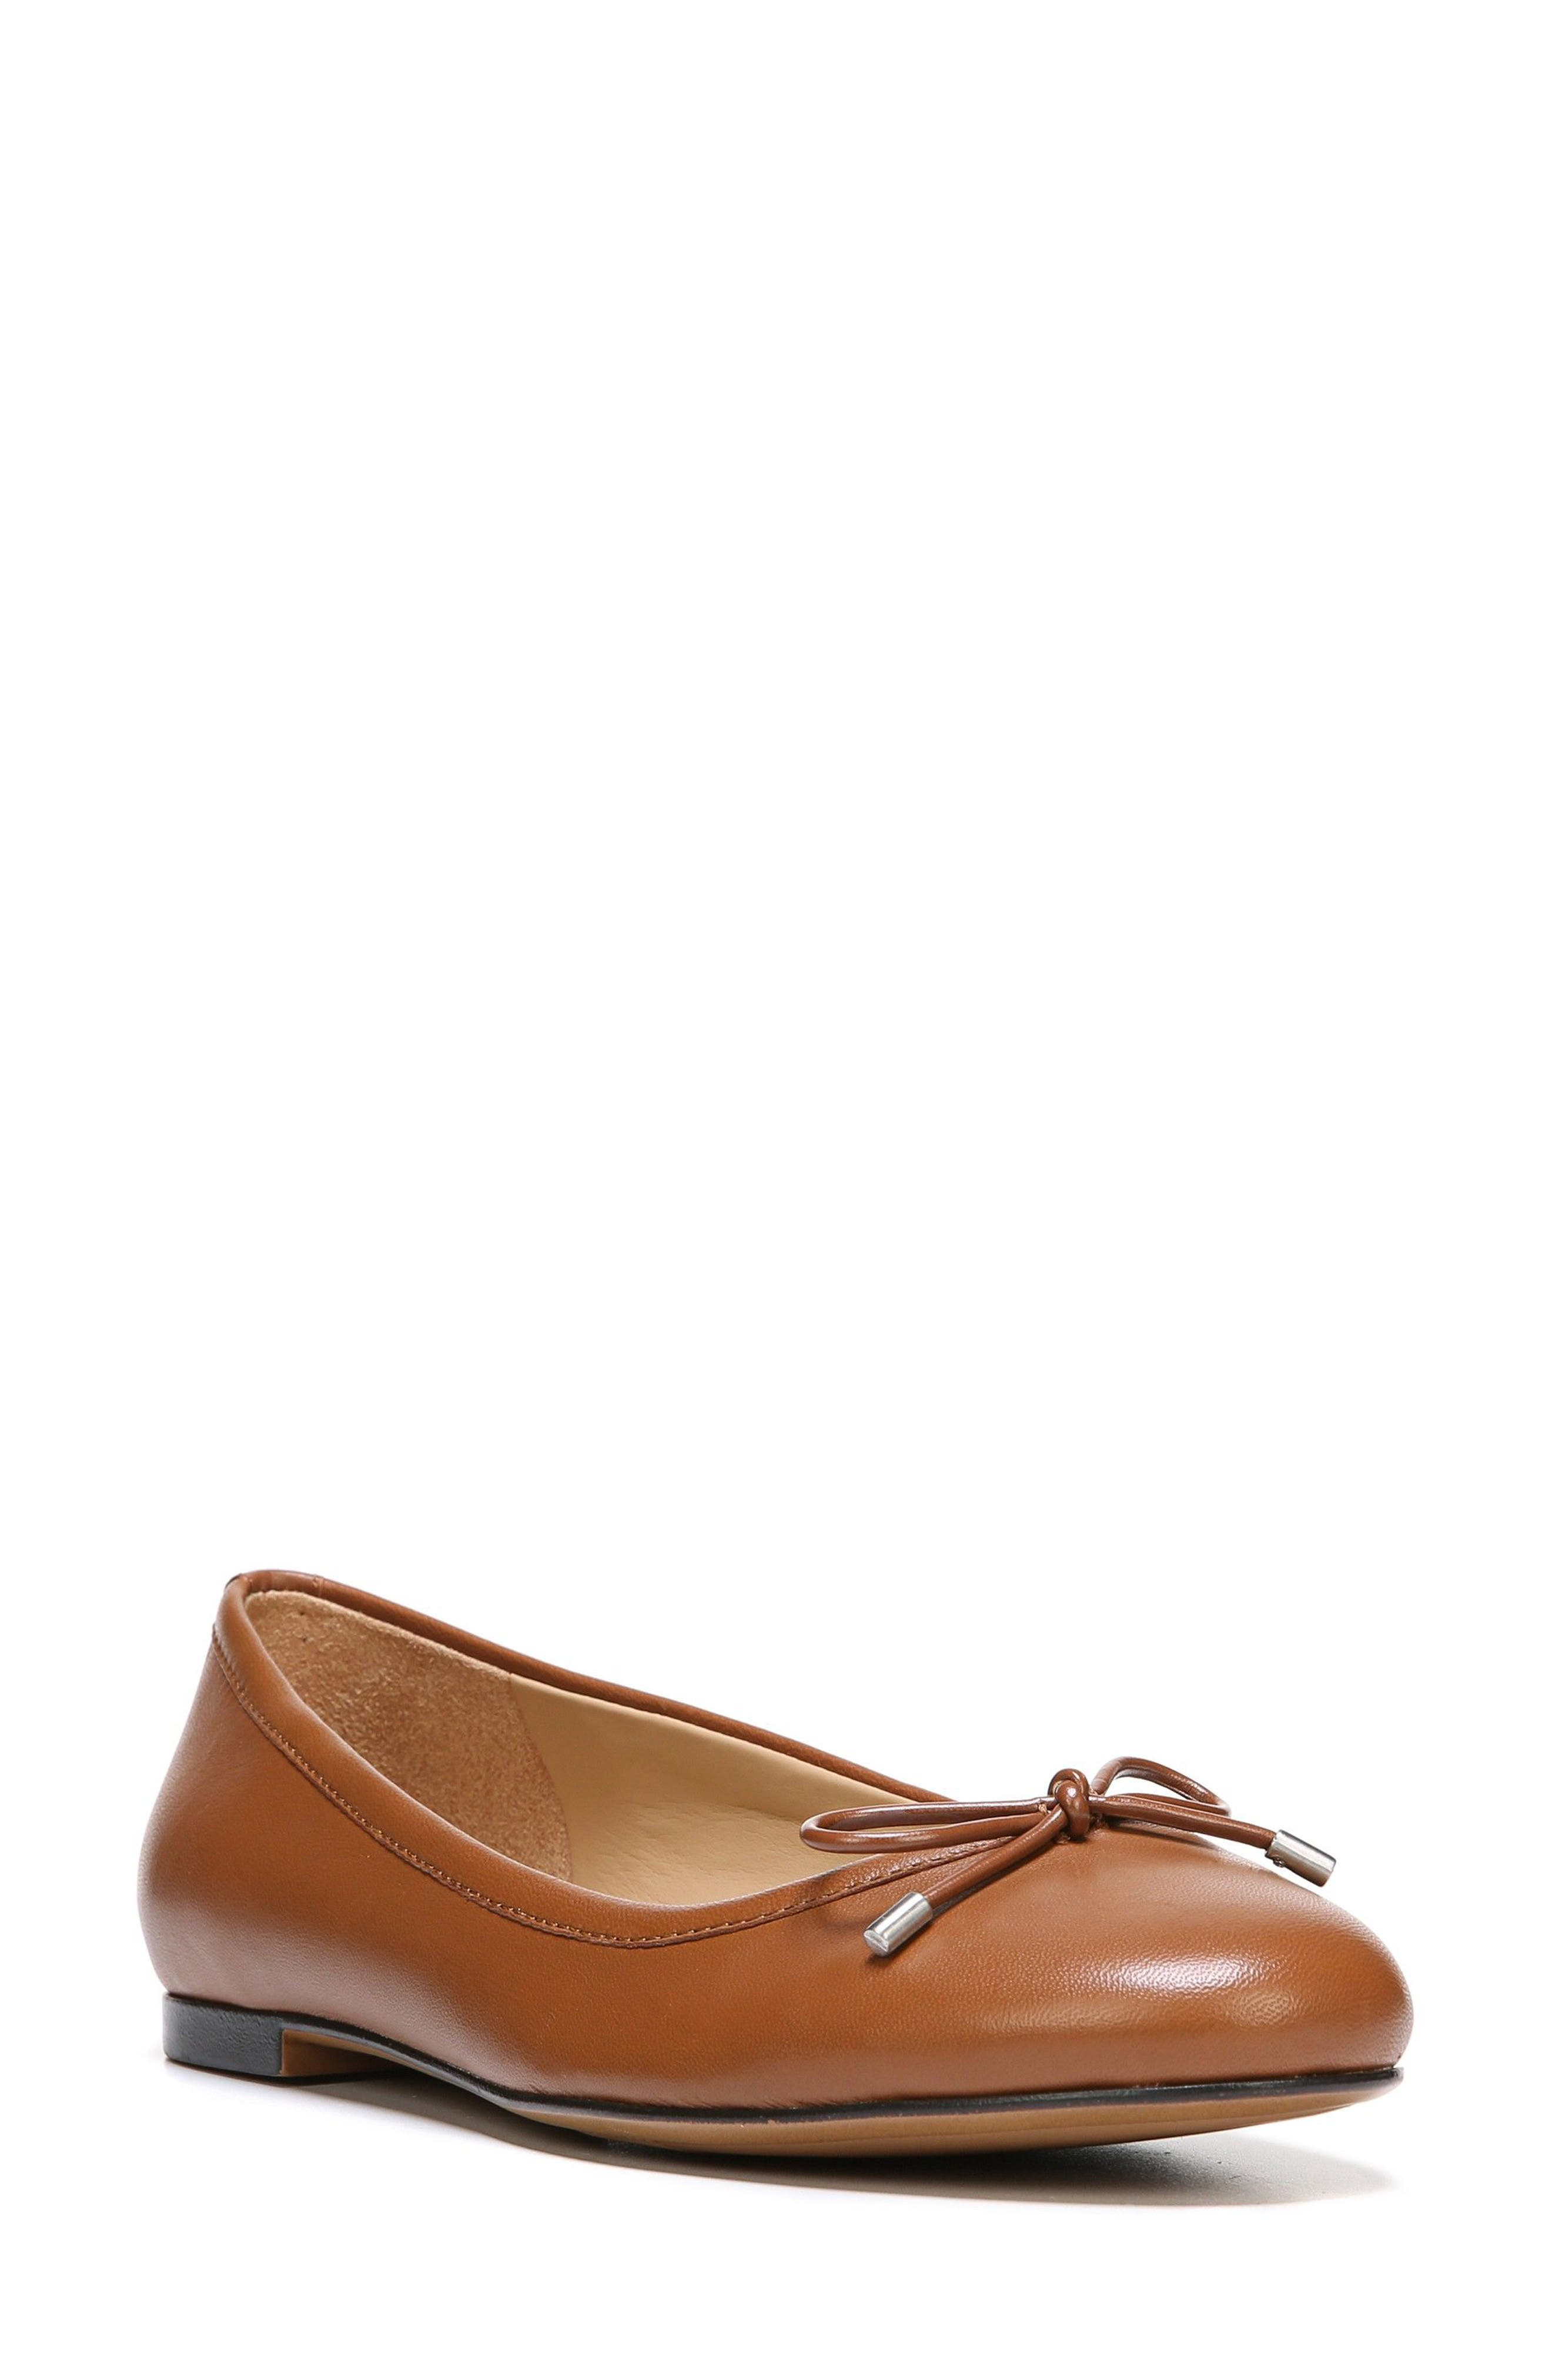 Grace Flat,                         Main,                         color, Saddle Tan Leather